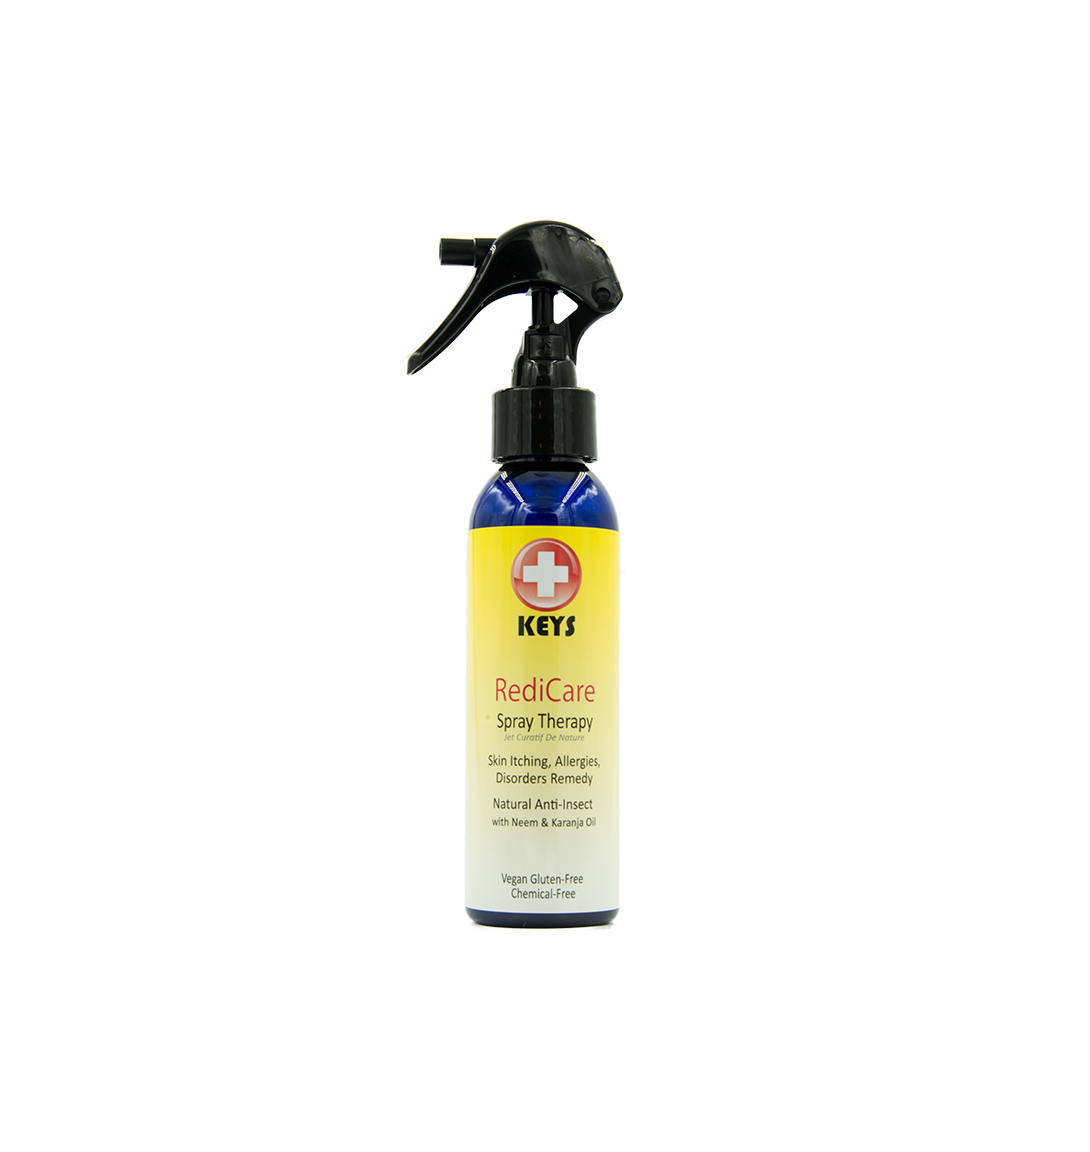 RediCare Therapy Spray